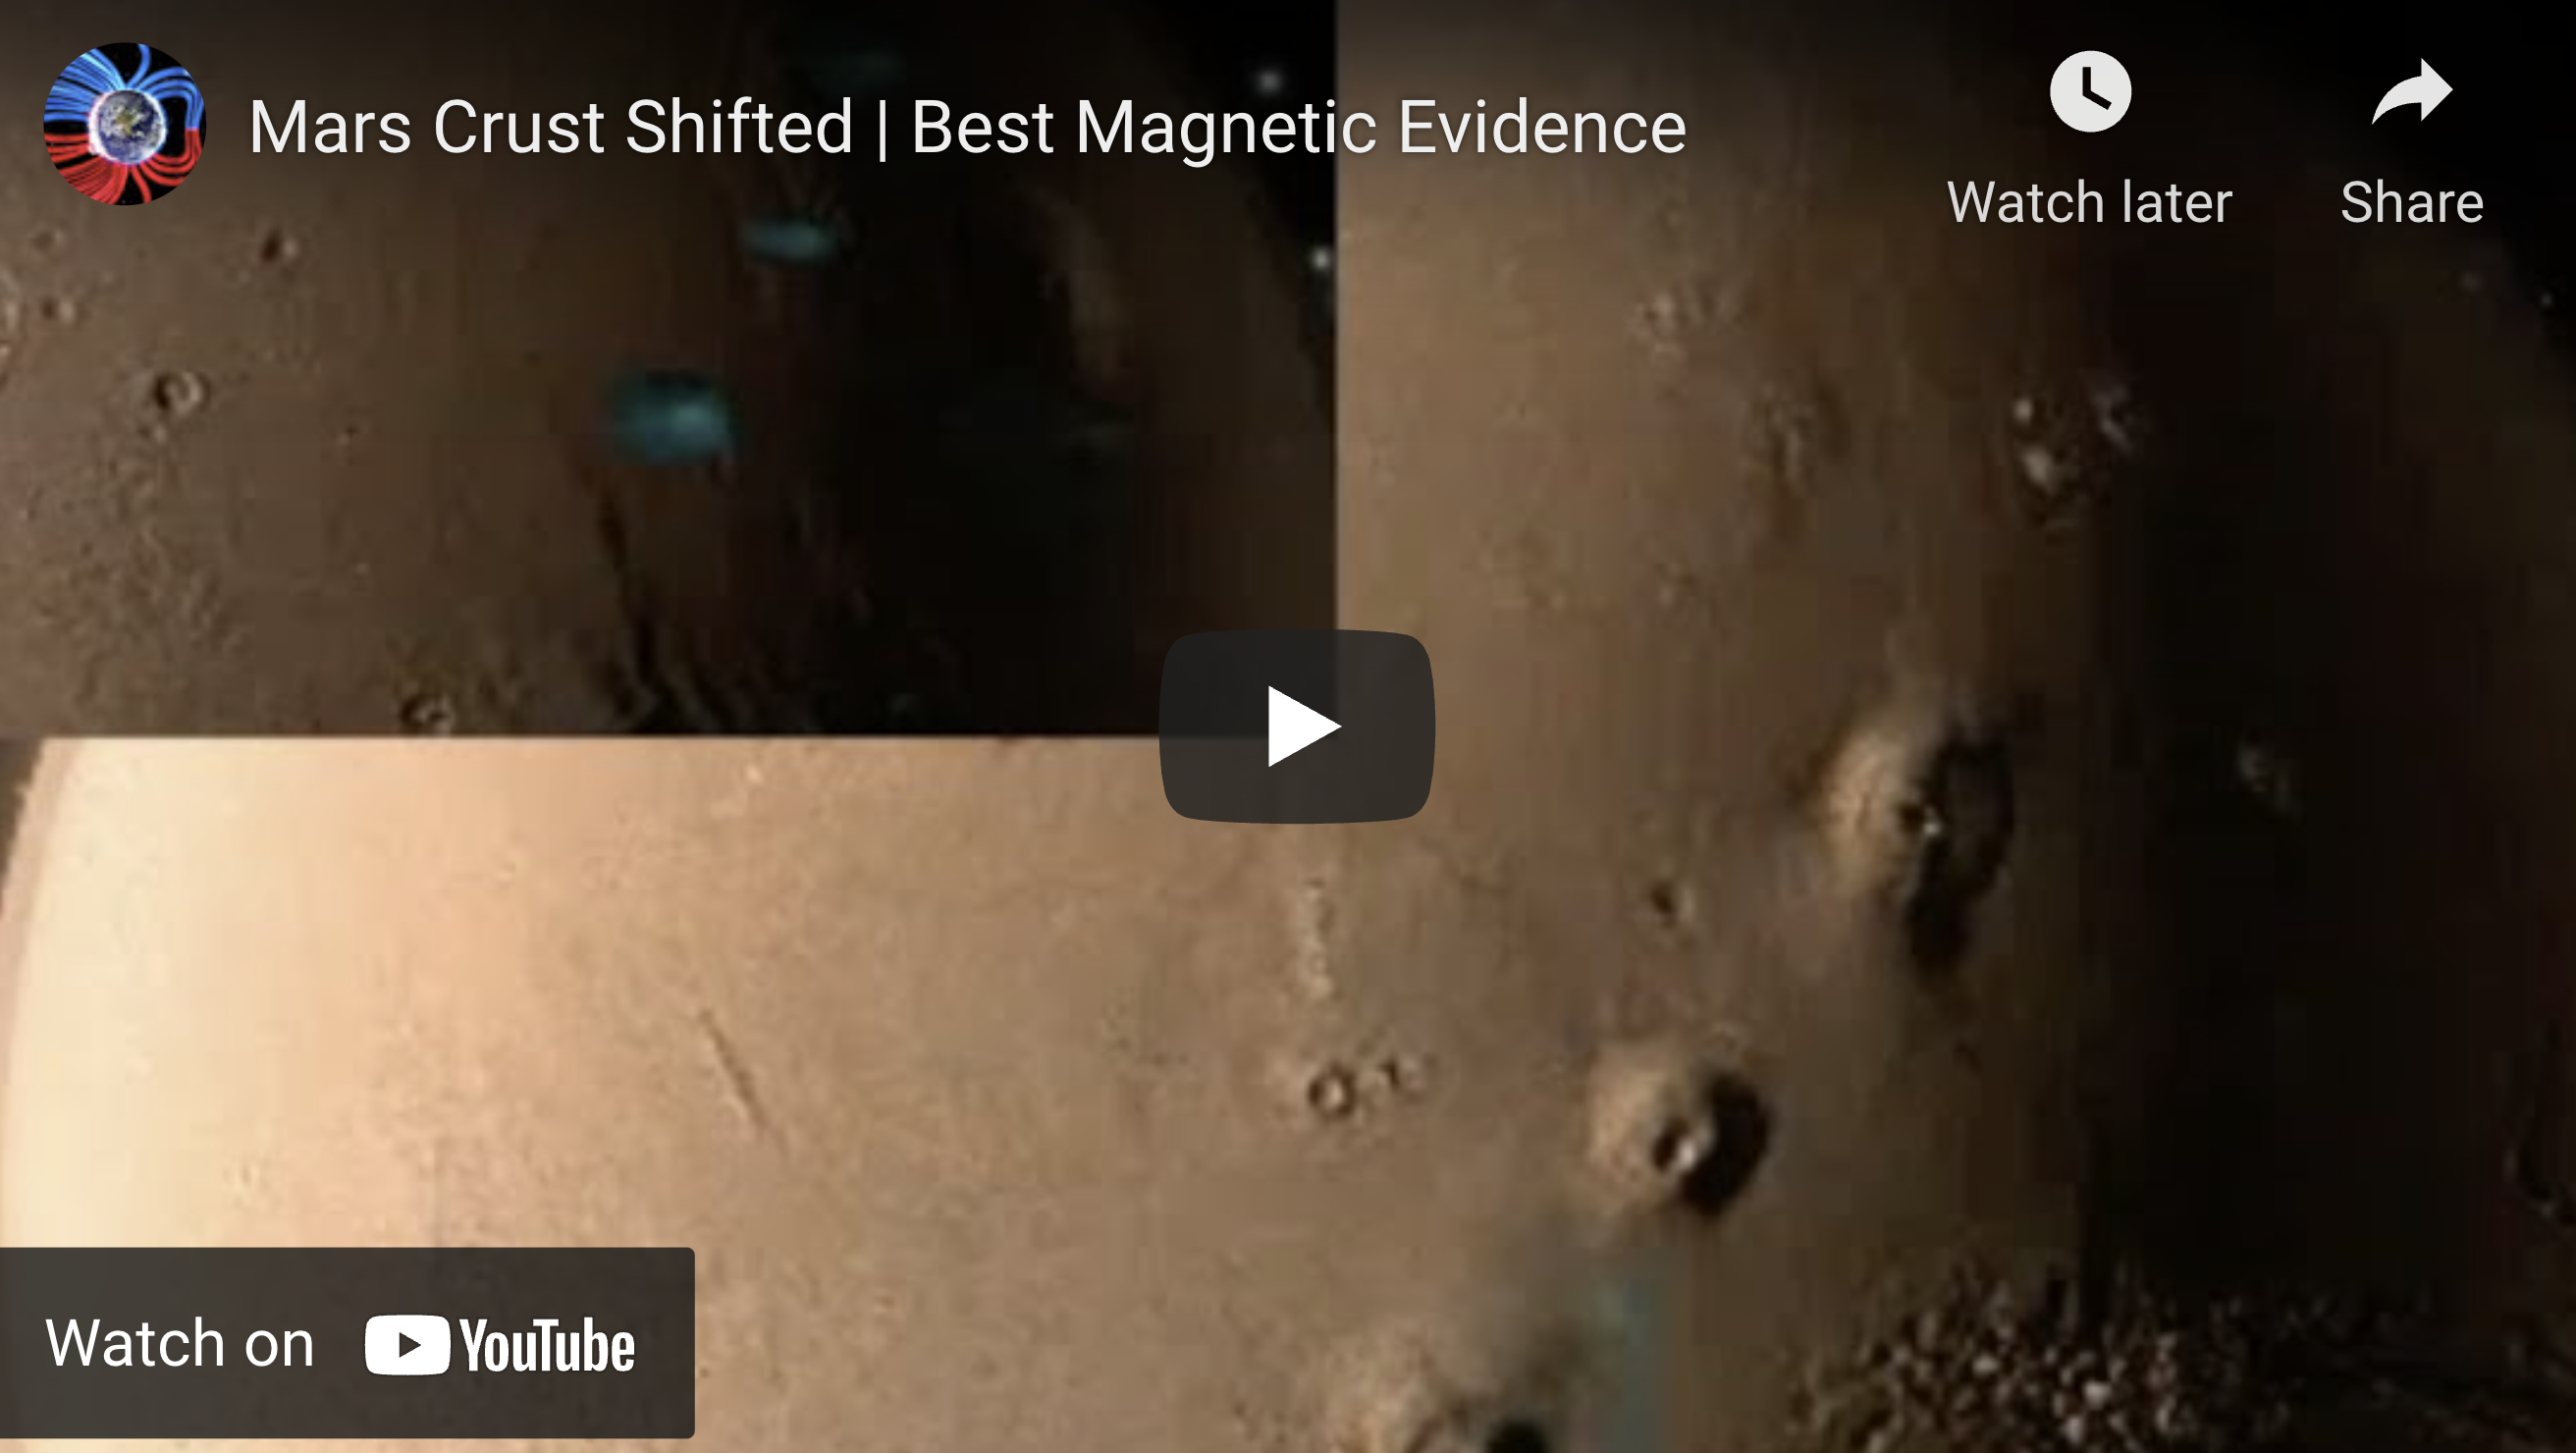 Suspicious Observers Post Mars Crust Shifted Best Magnetic Evidence EXZM Zack Mount July 2nd 2021